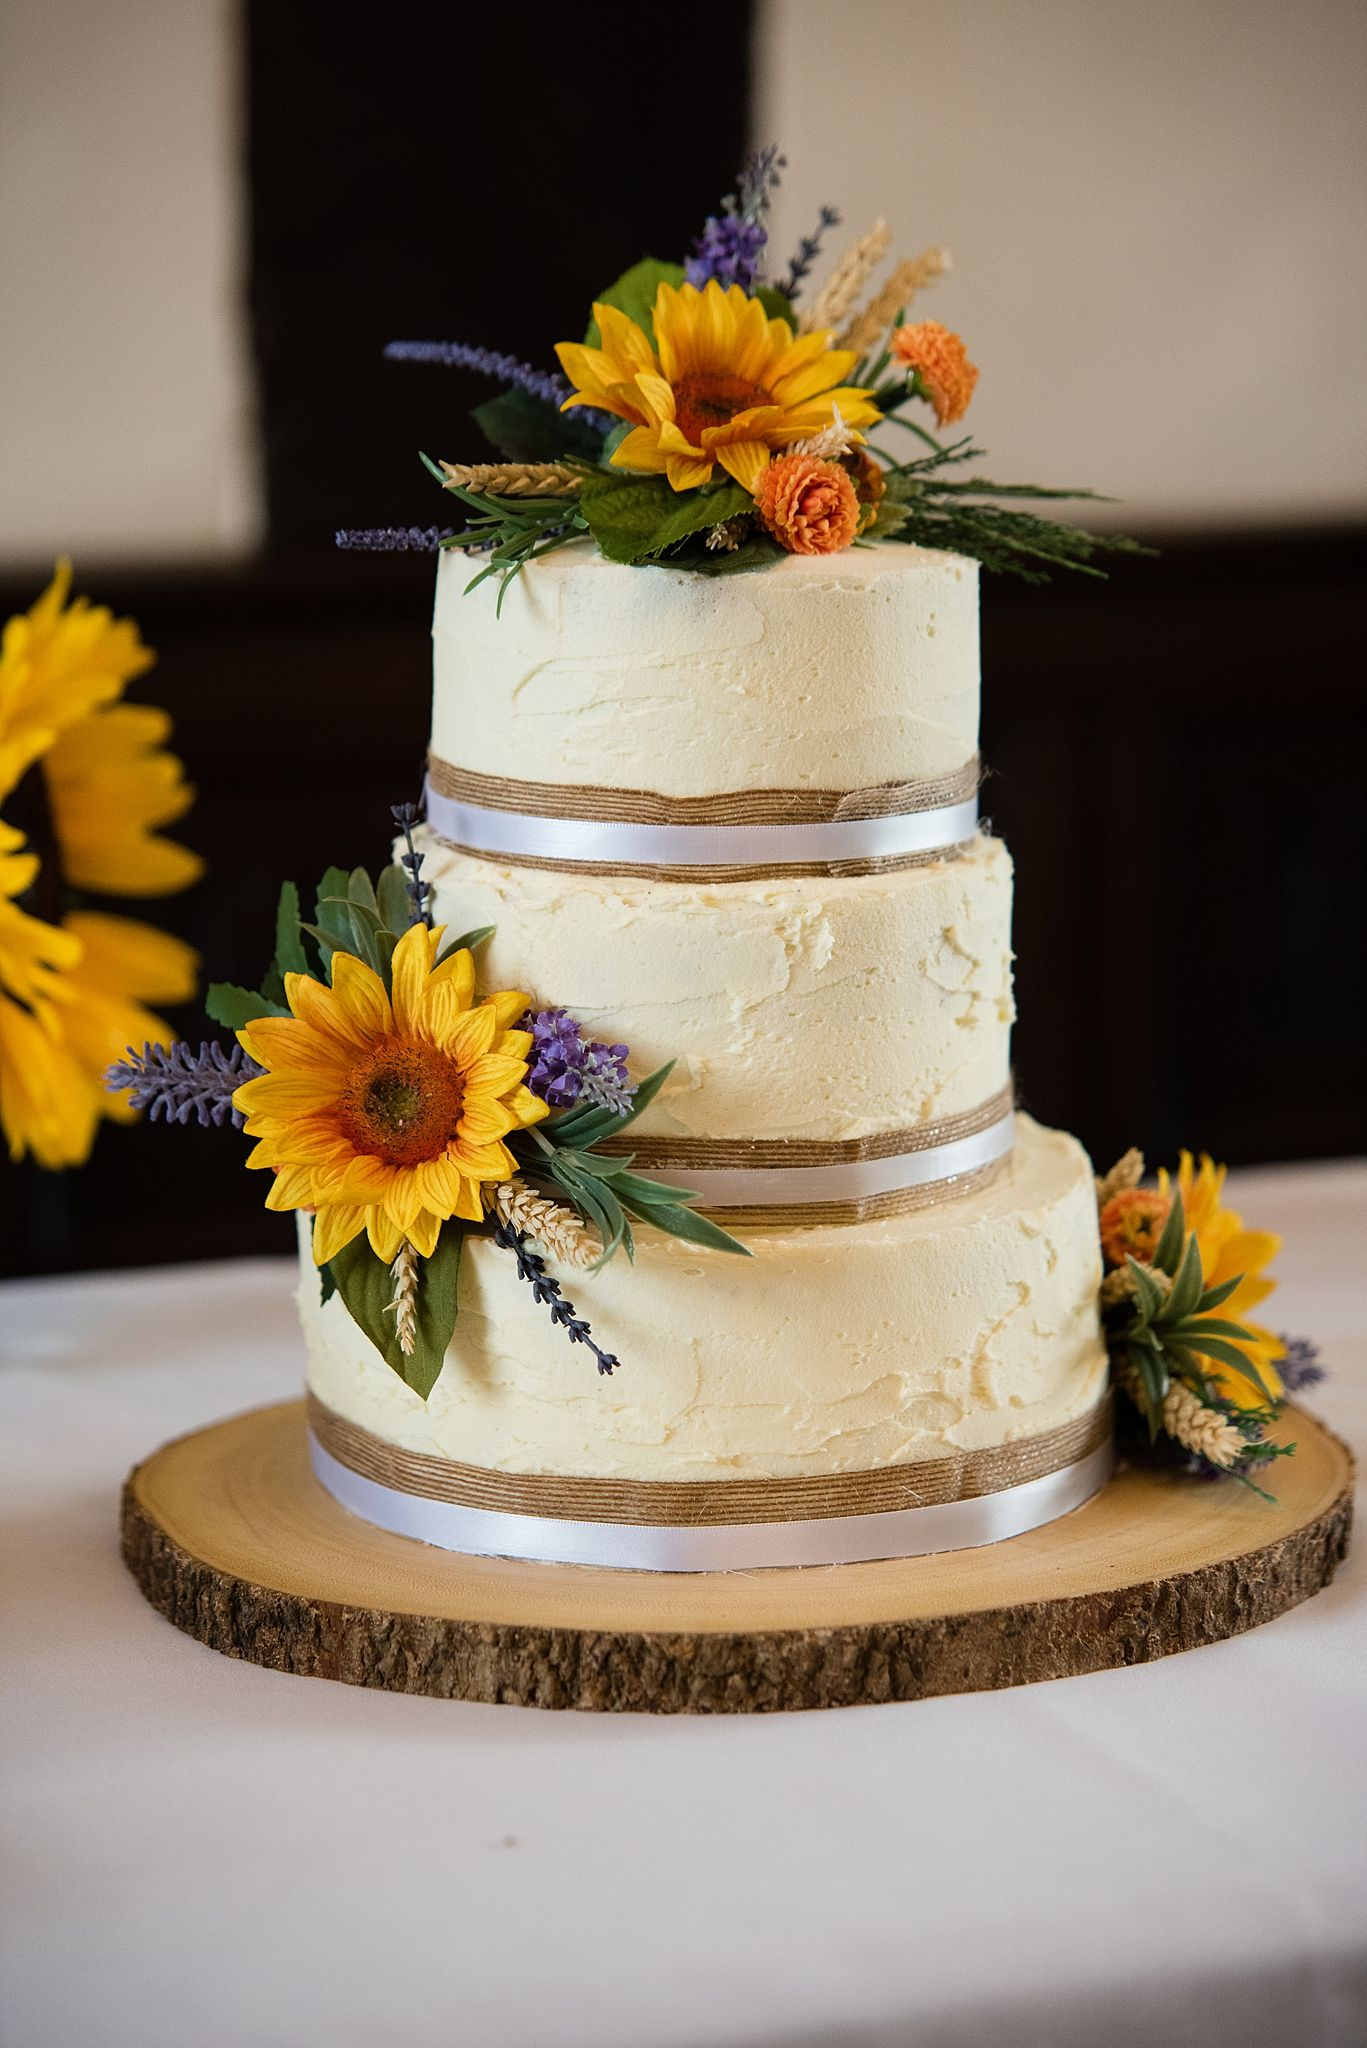 Rustic three tier wedding cake decorated with sunflowers